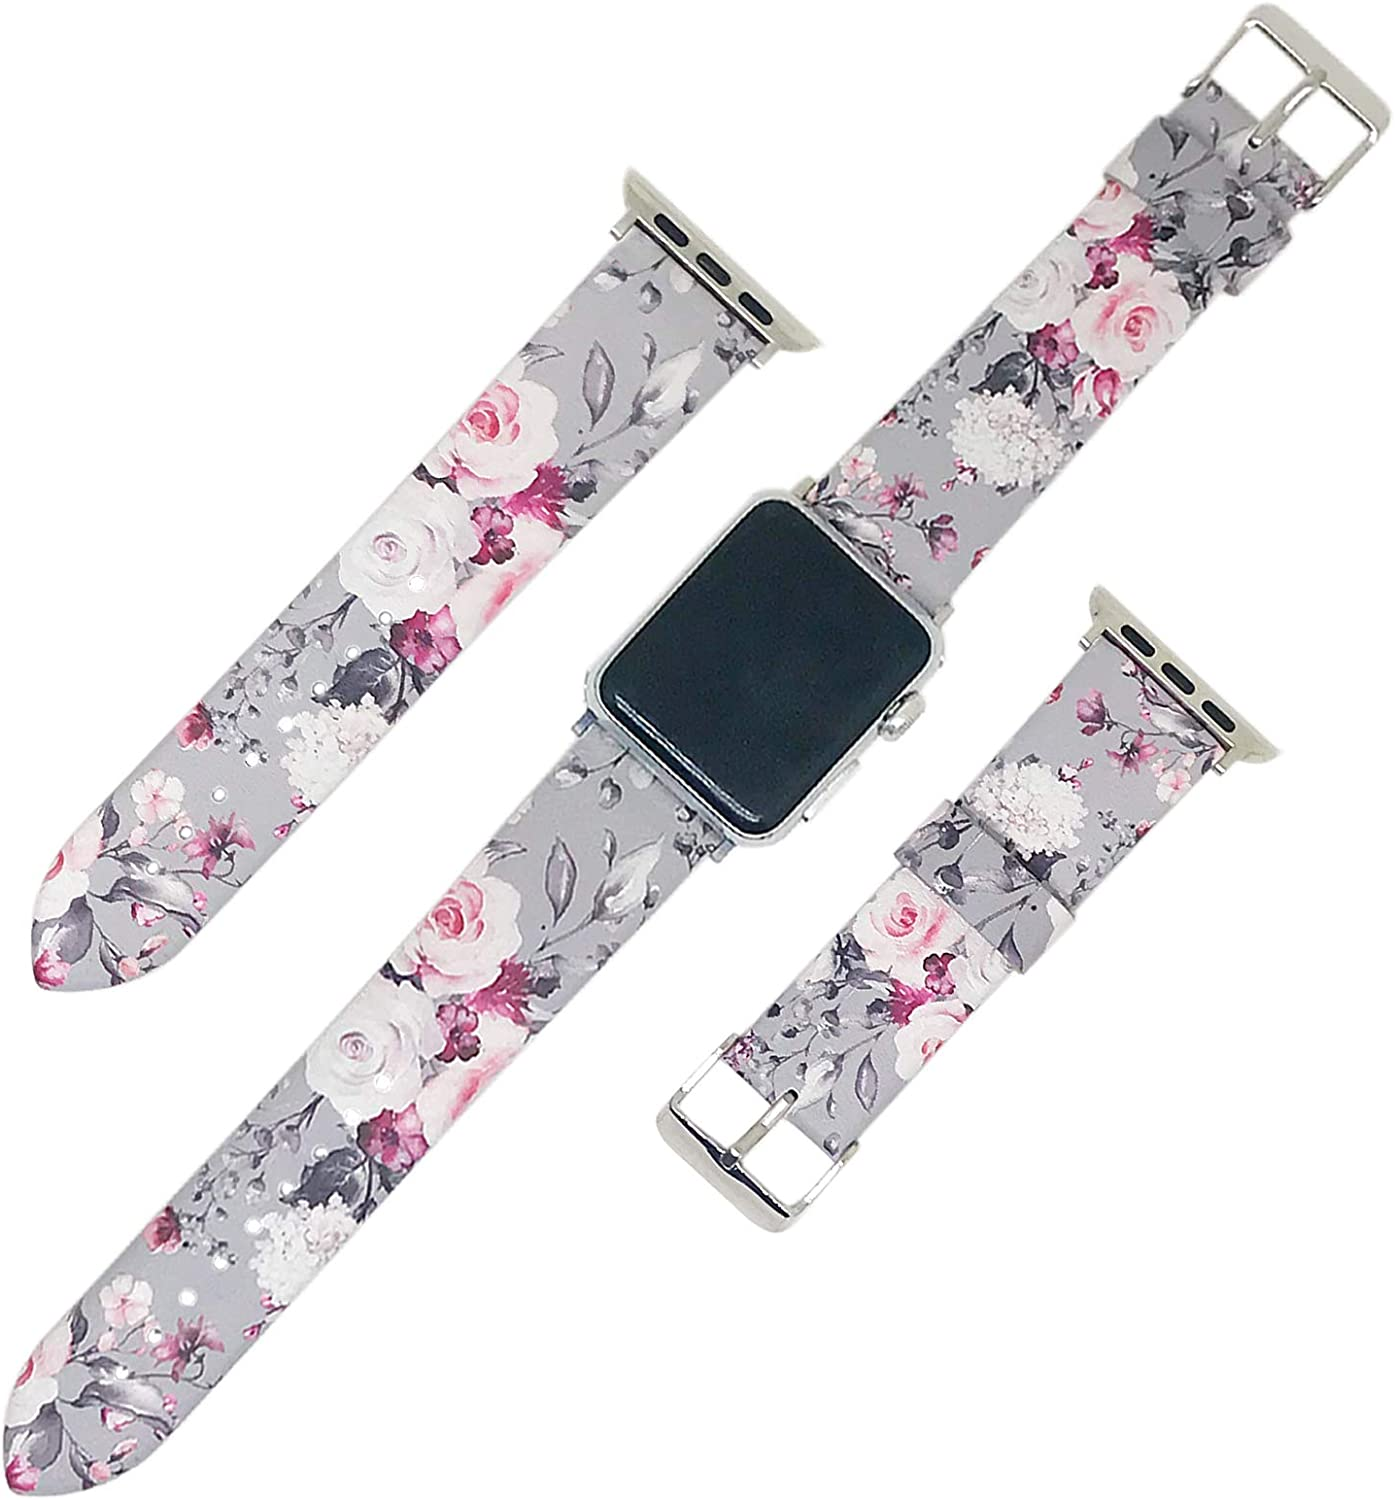 Replacement Band Compatible with Apple Watch iWatch SE & Series 6 & Series 5 4 3 2 1 PU Leather Watch Thin Wristband Strap for Women